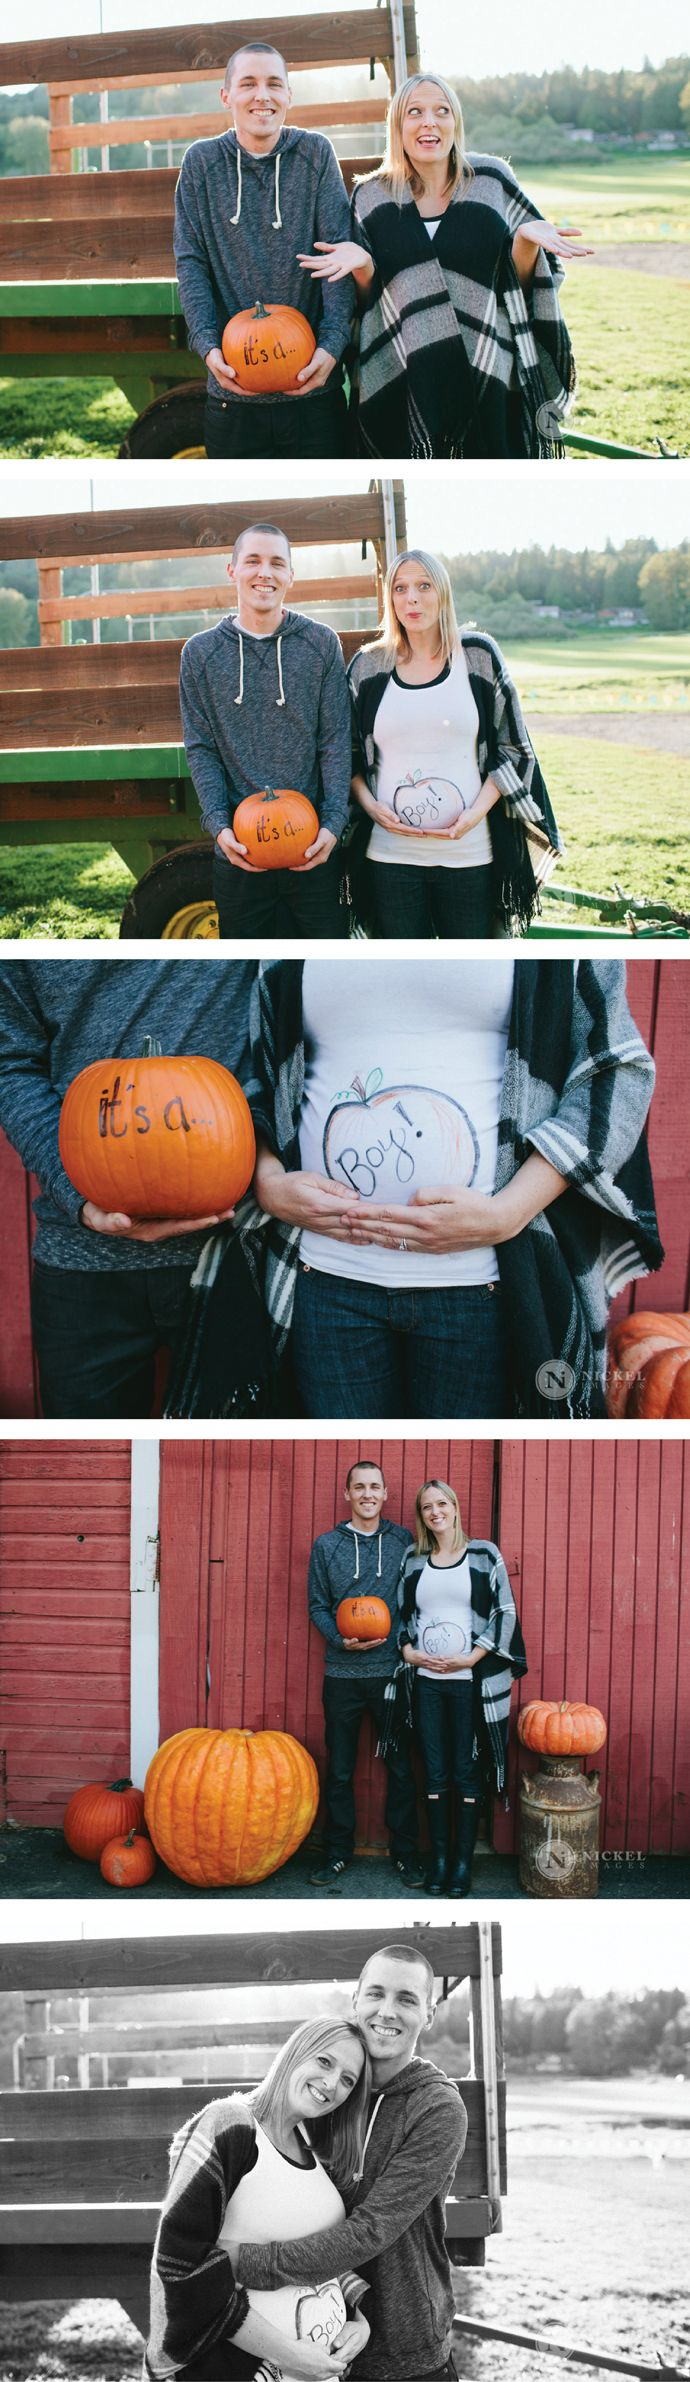 Best 25+ Fall gender reveal ideas on Pinterest | Baby fall crafts ...